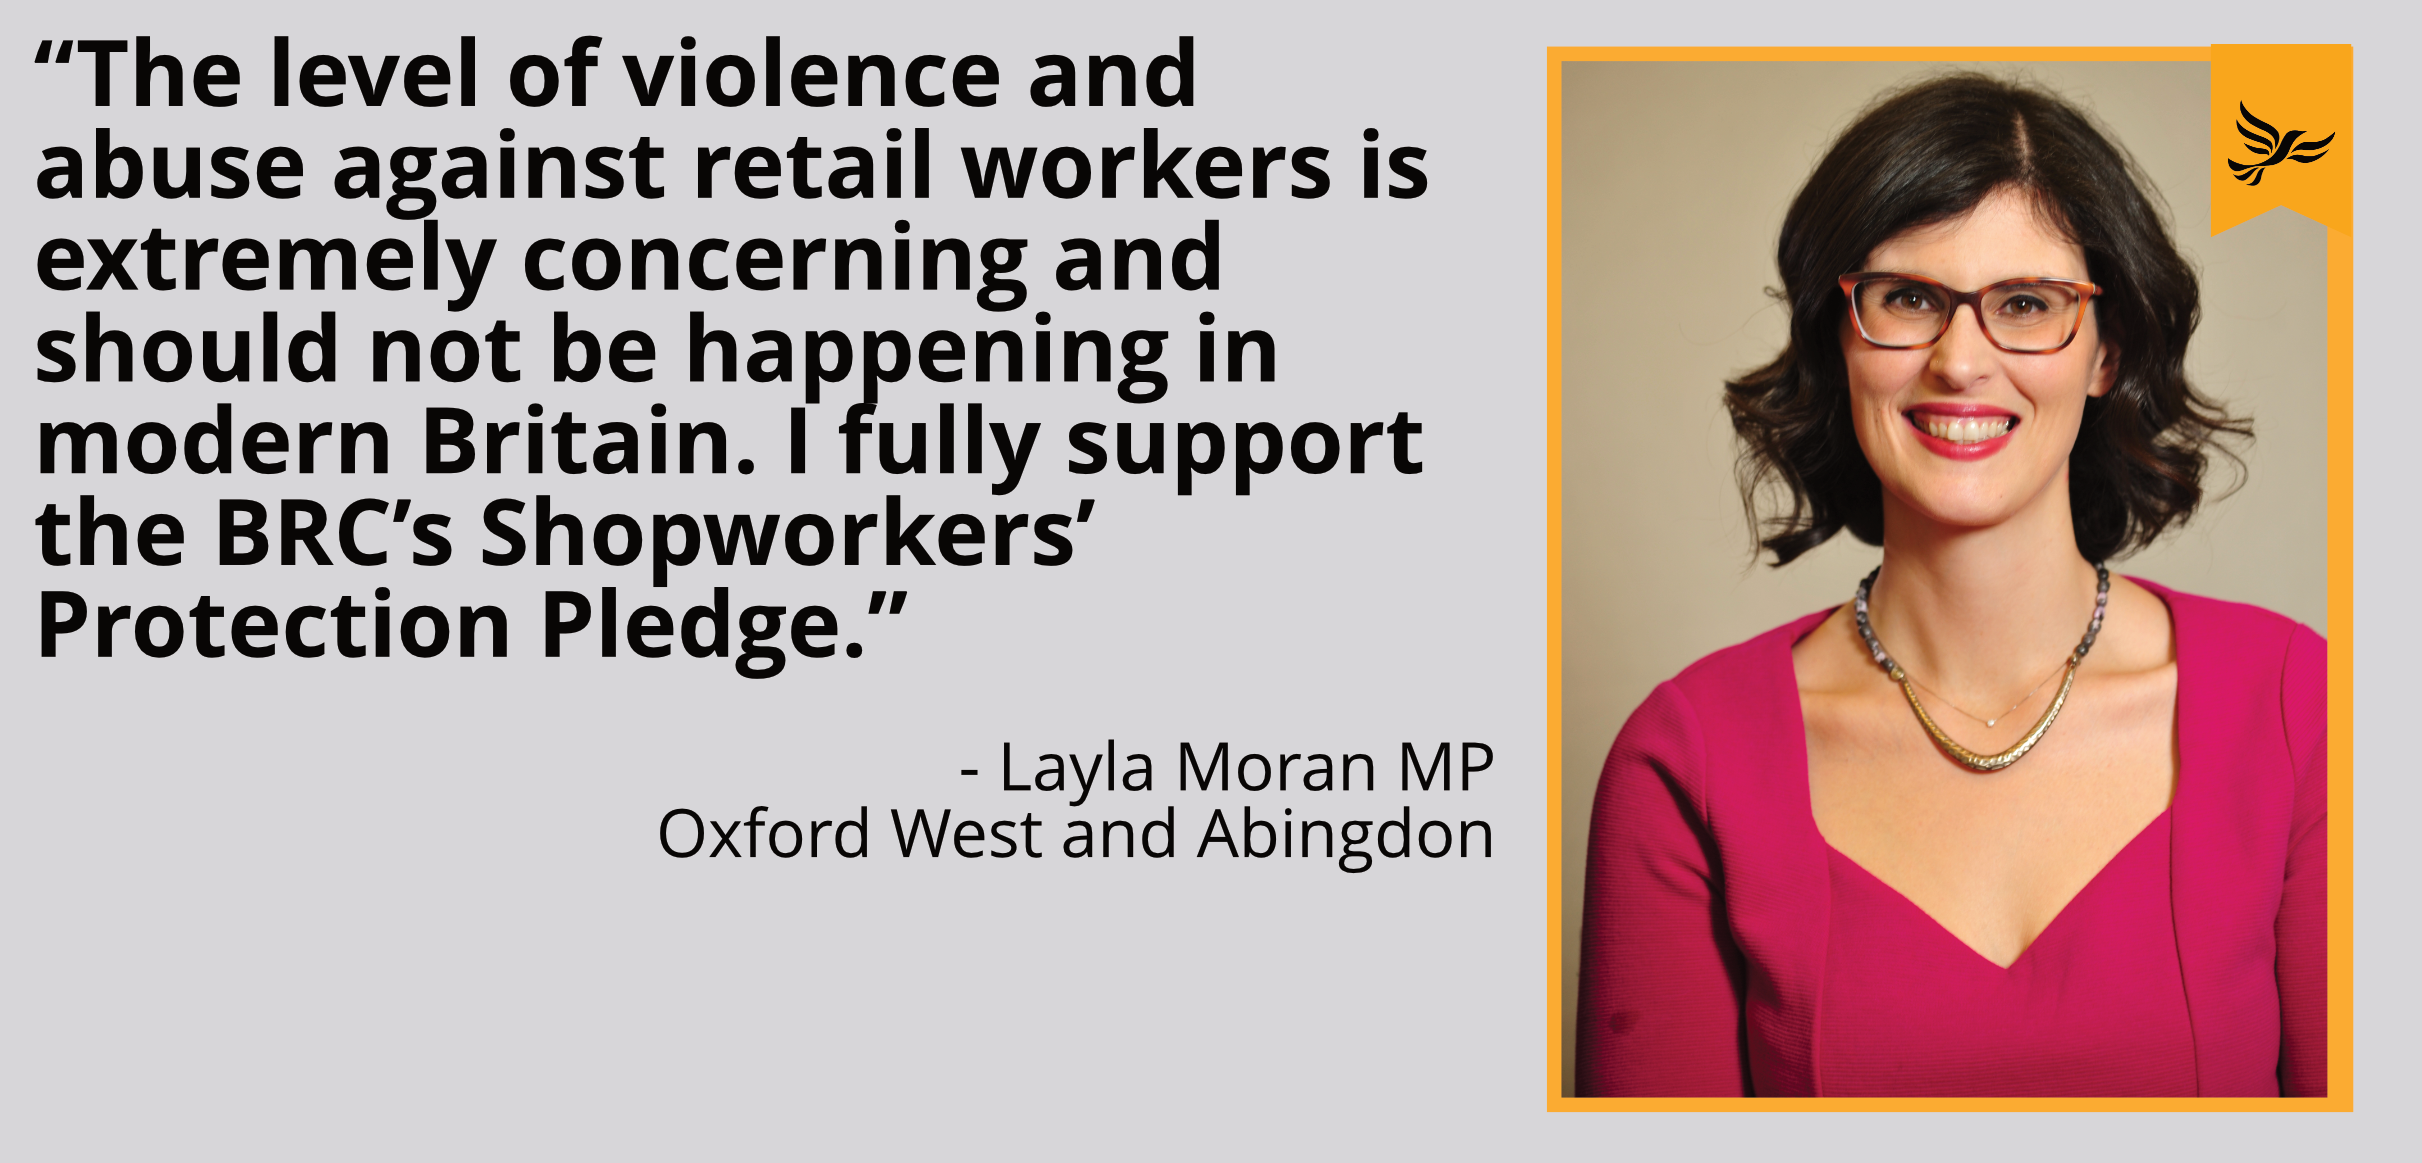 """The level of violence and abuse against retail workers is extremely concerning and should not be happening in modern Britain. I fully support the BRC's Shopworkers' Protection Pledge."